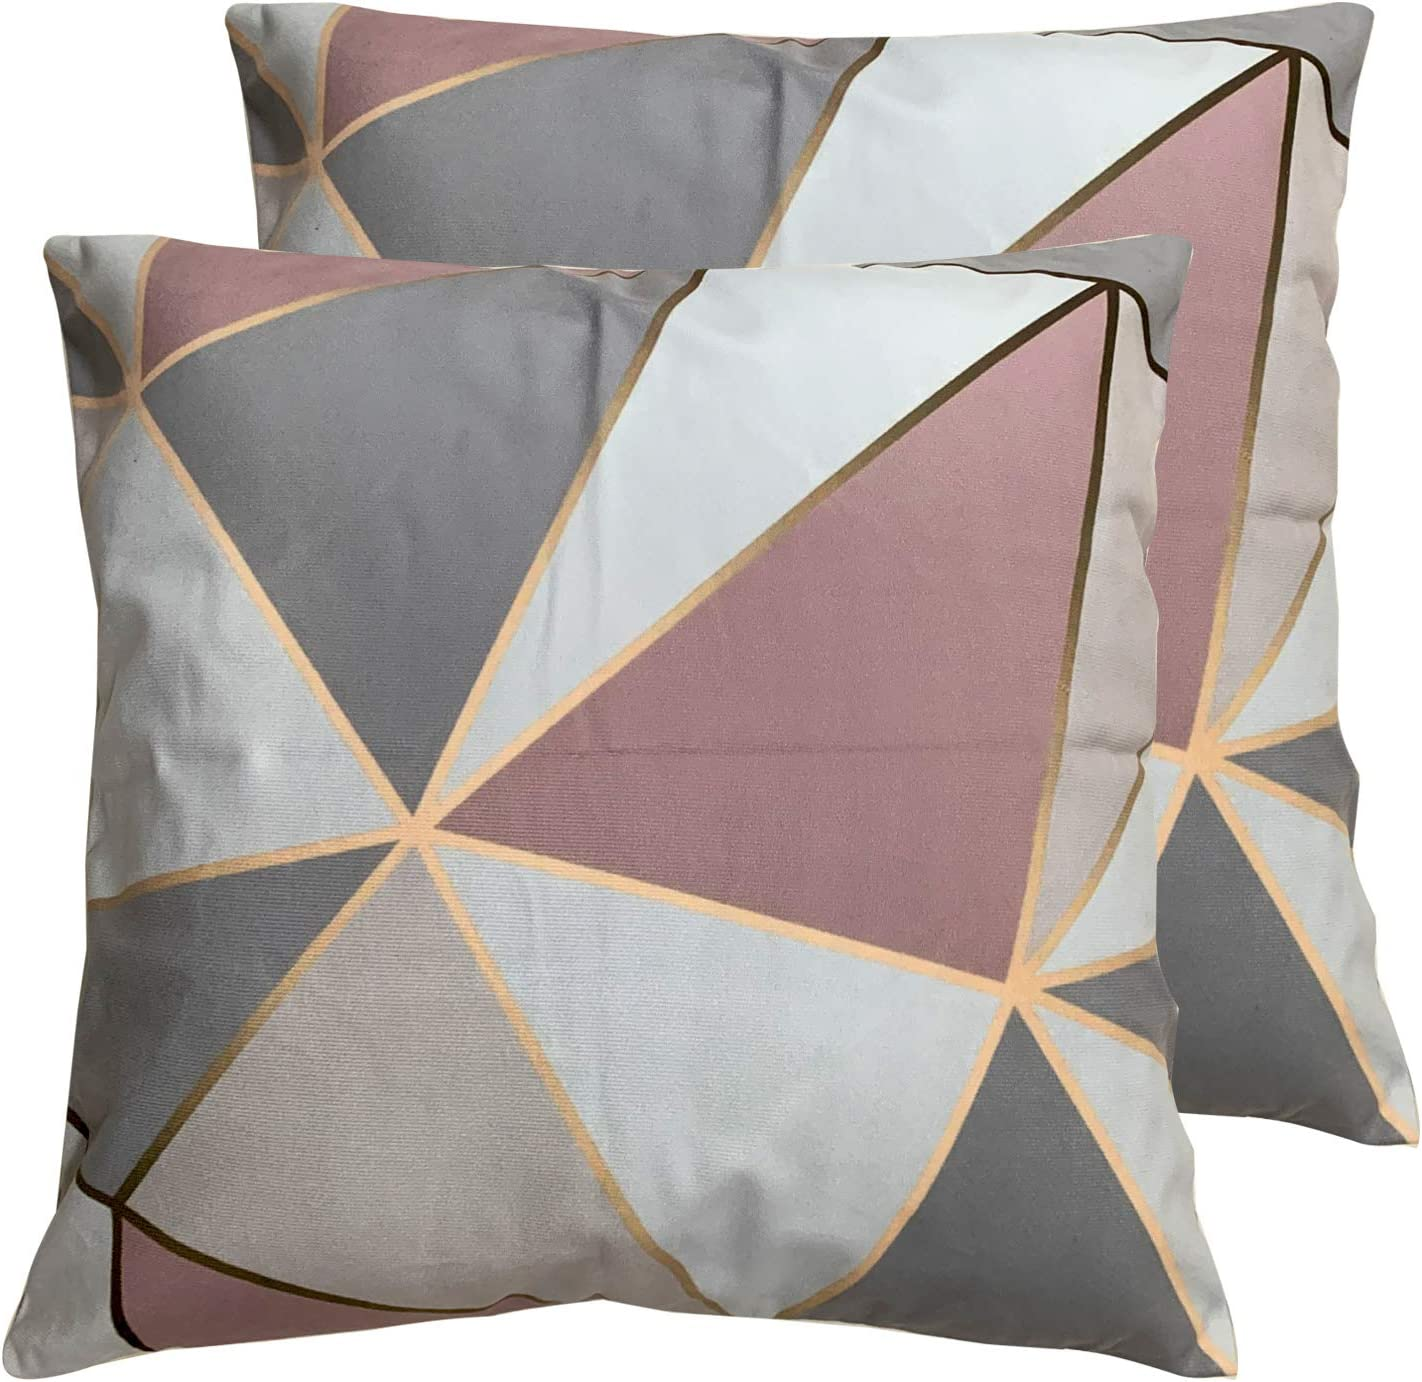 Deco4URLife Set of 2 Square 18X18 inch Throw Pillow Cover for Women/Men, Short Plush Pillow Case Cushion Cover for Home Sofa Couch Living Room Car Decor - Apex Geometric Rose Gold Pink